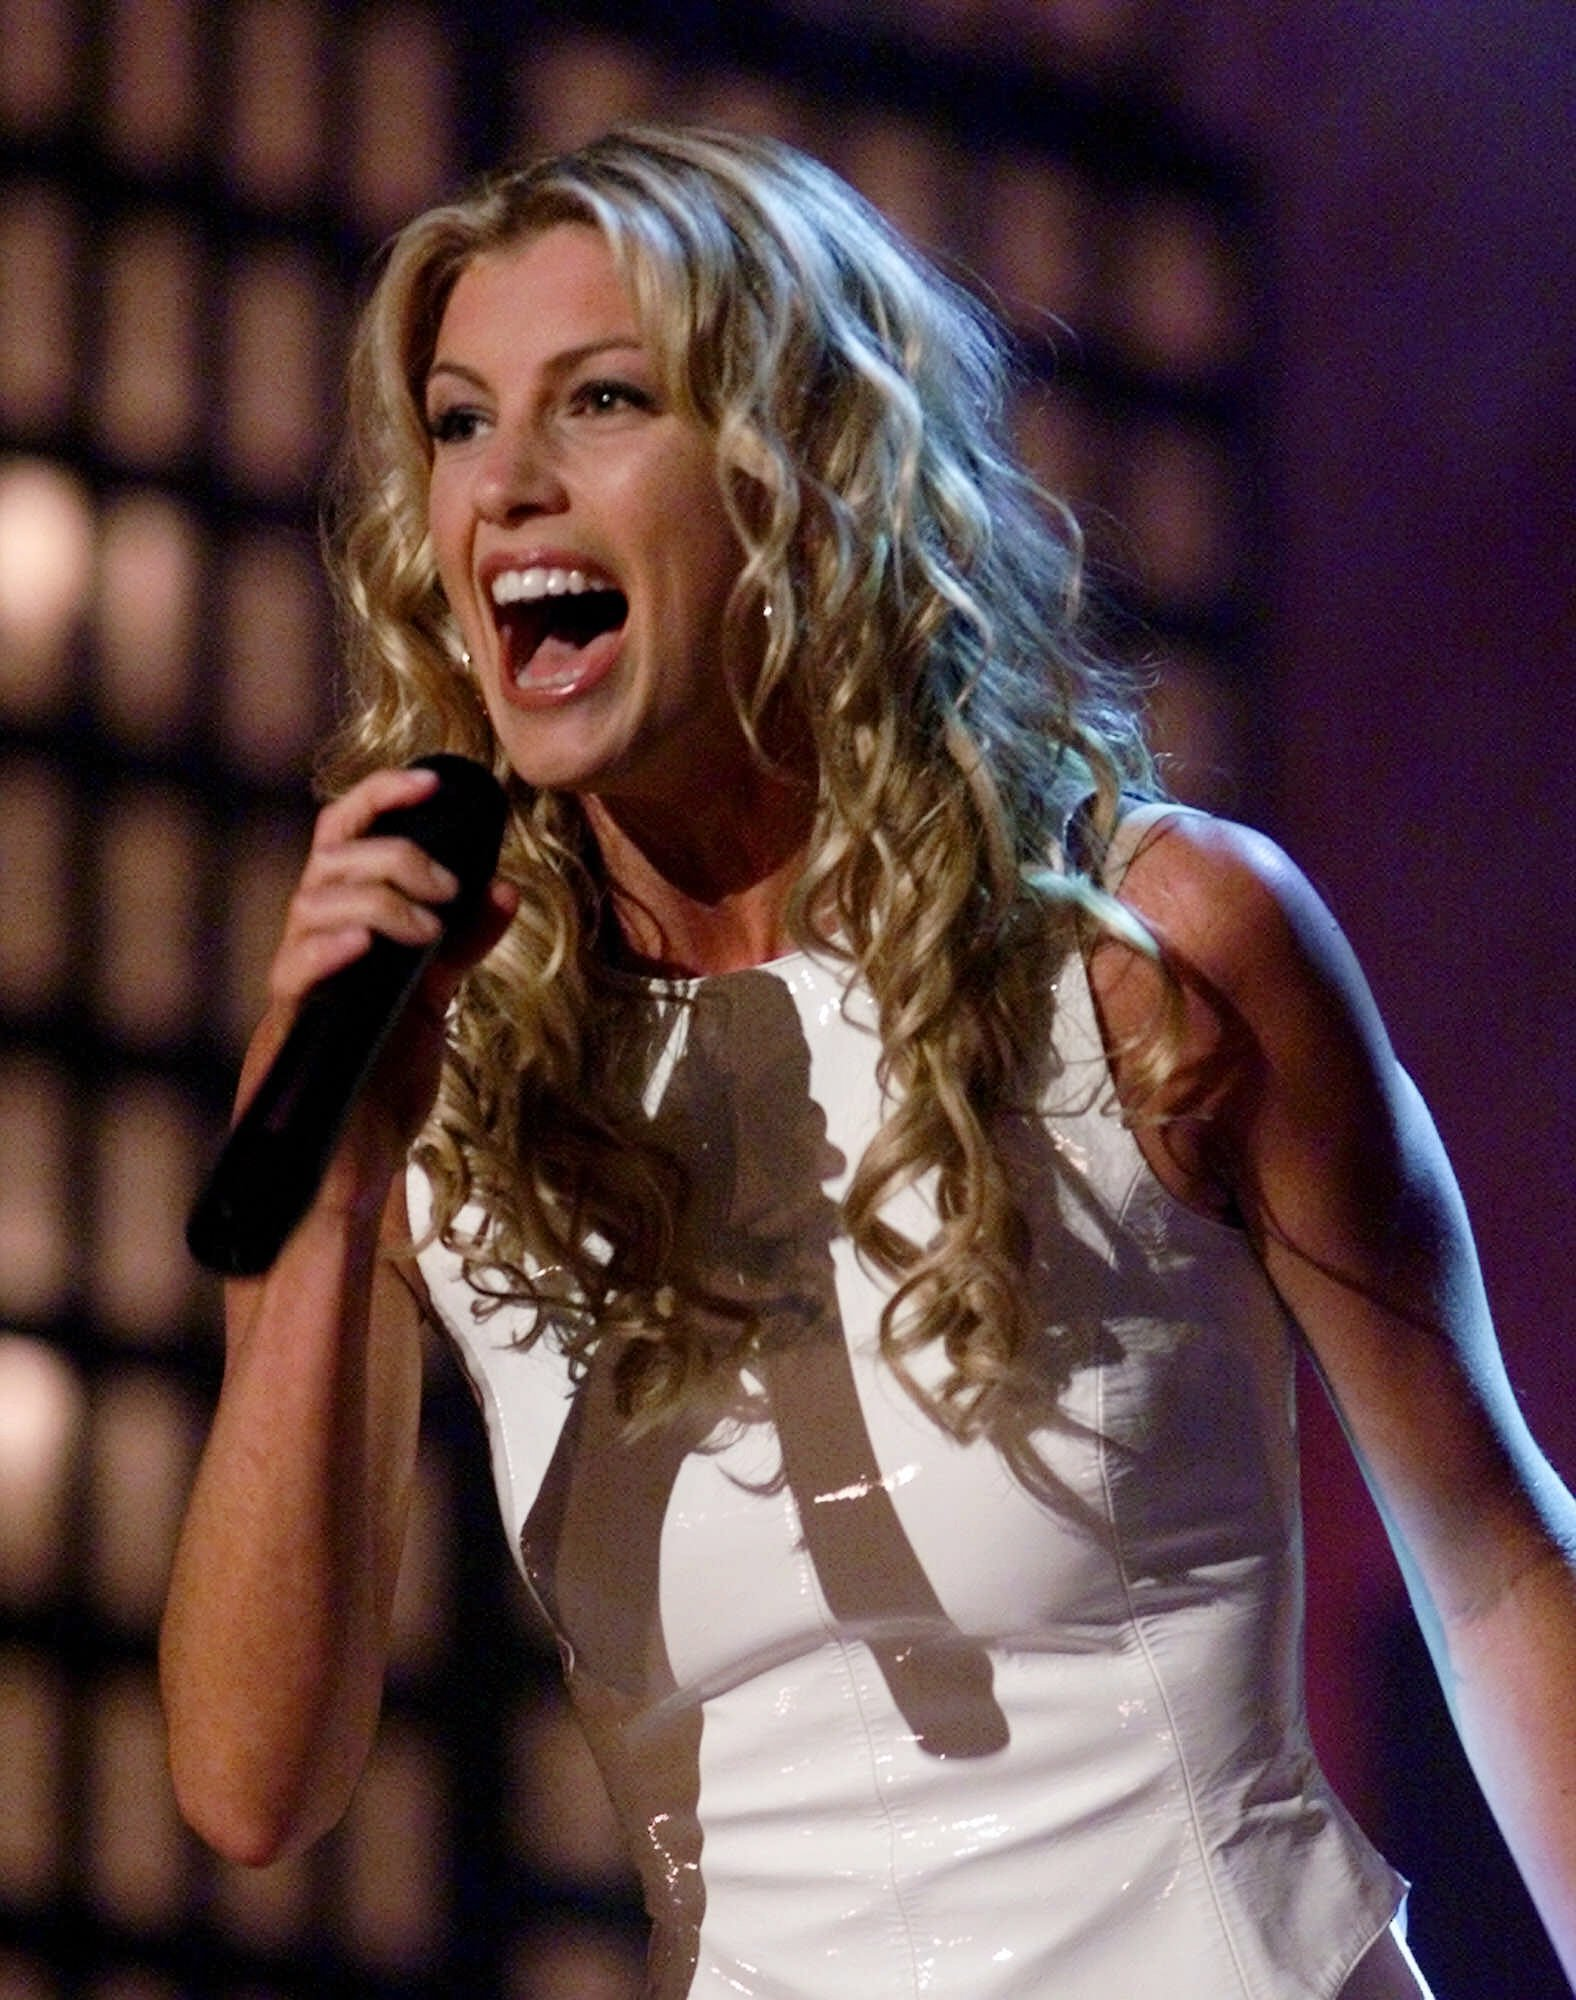 Faith Hill performs at the TNN Music Awards in Nashville in June of 2000.